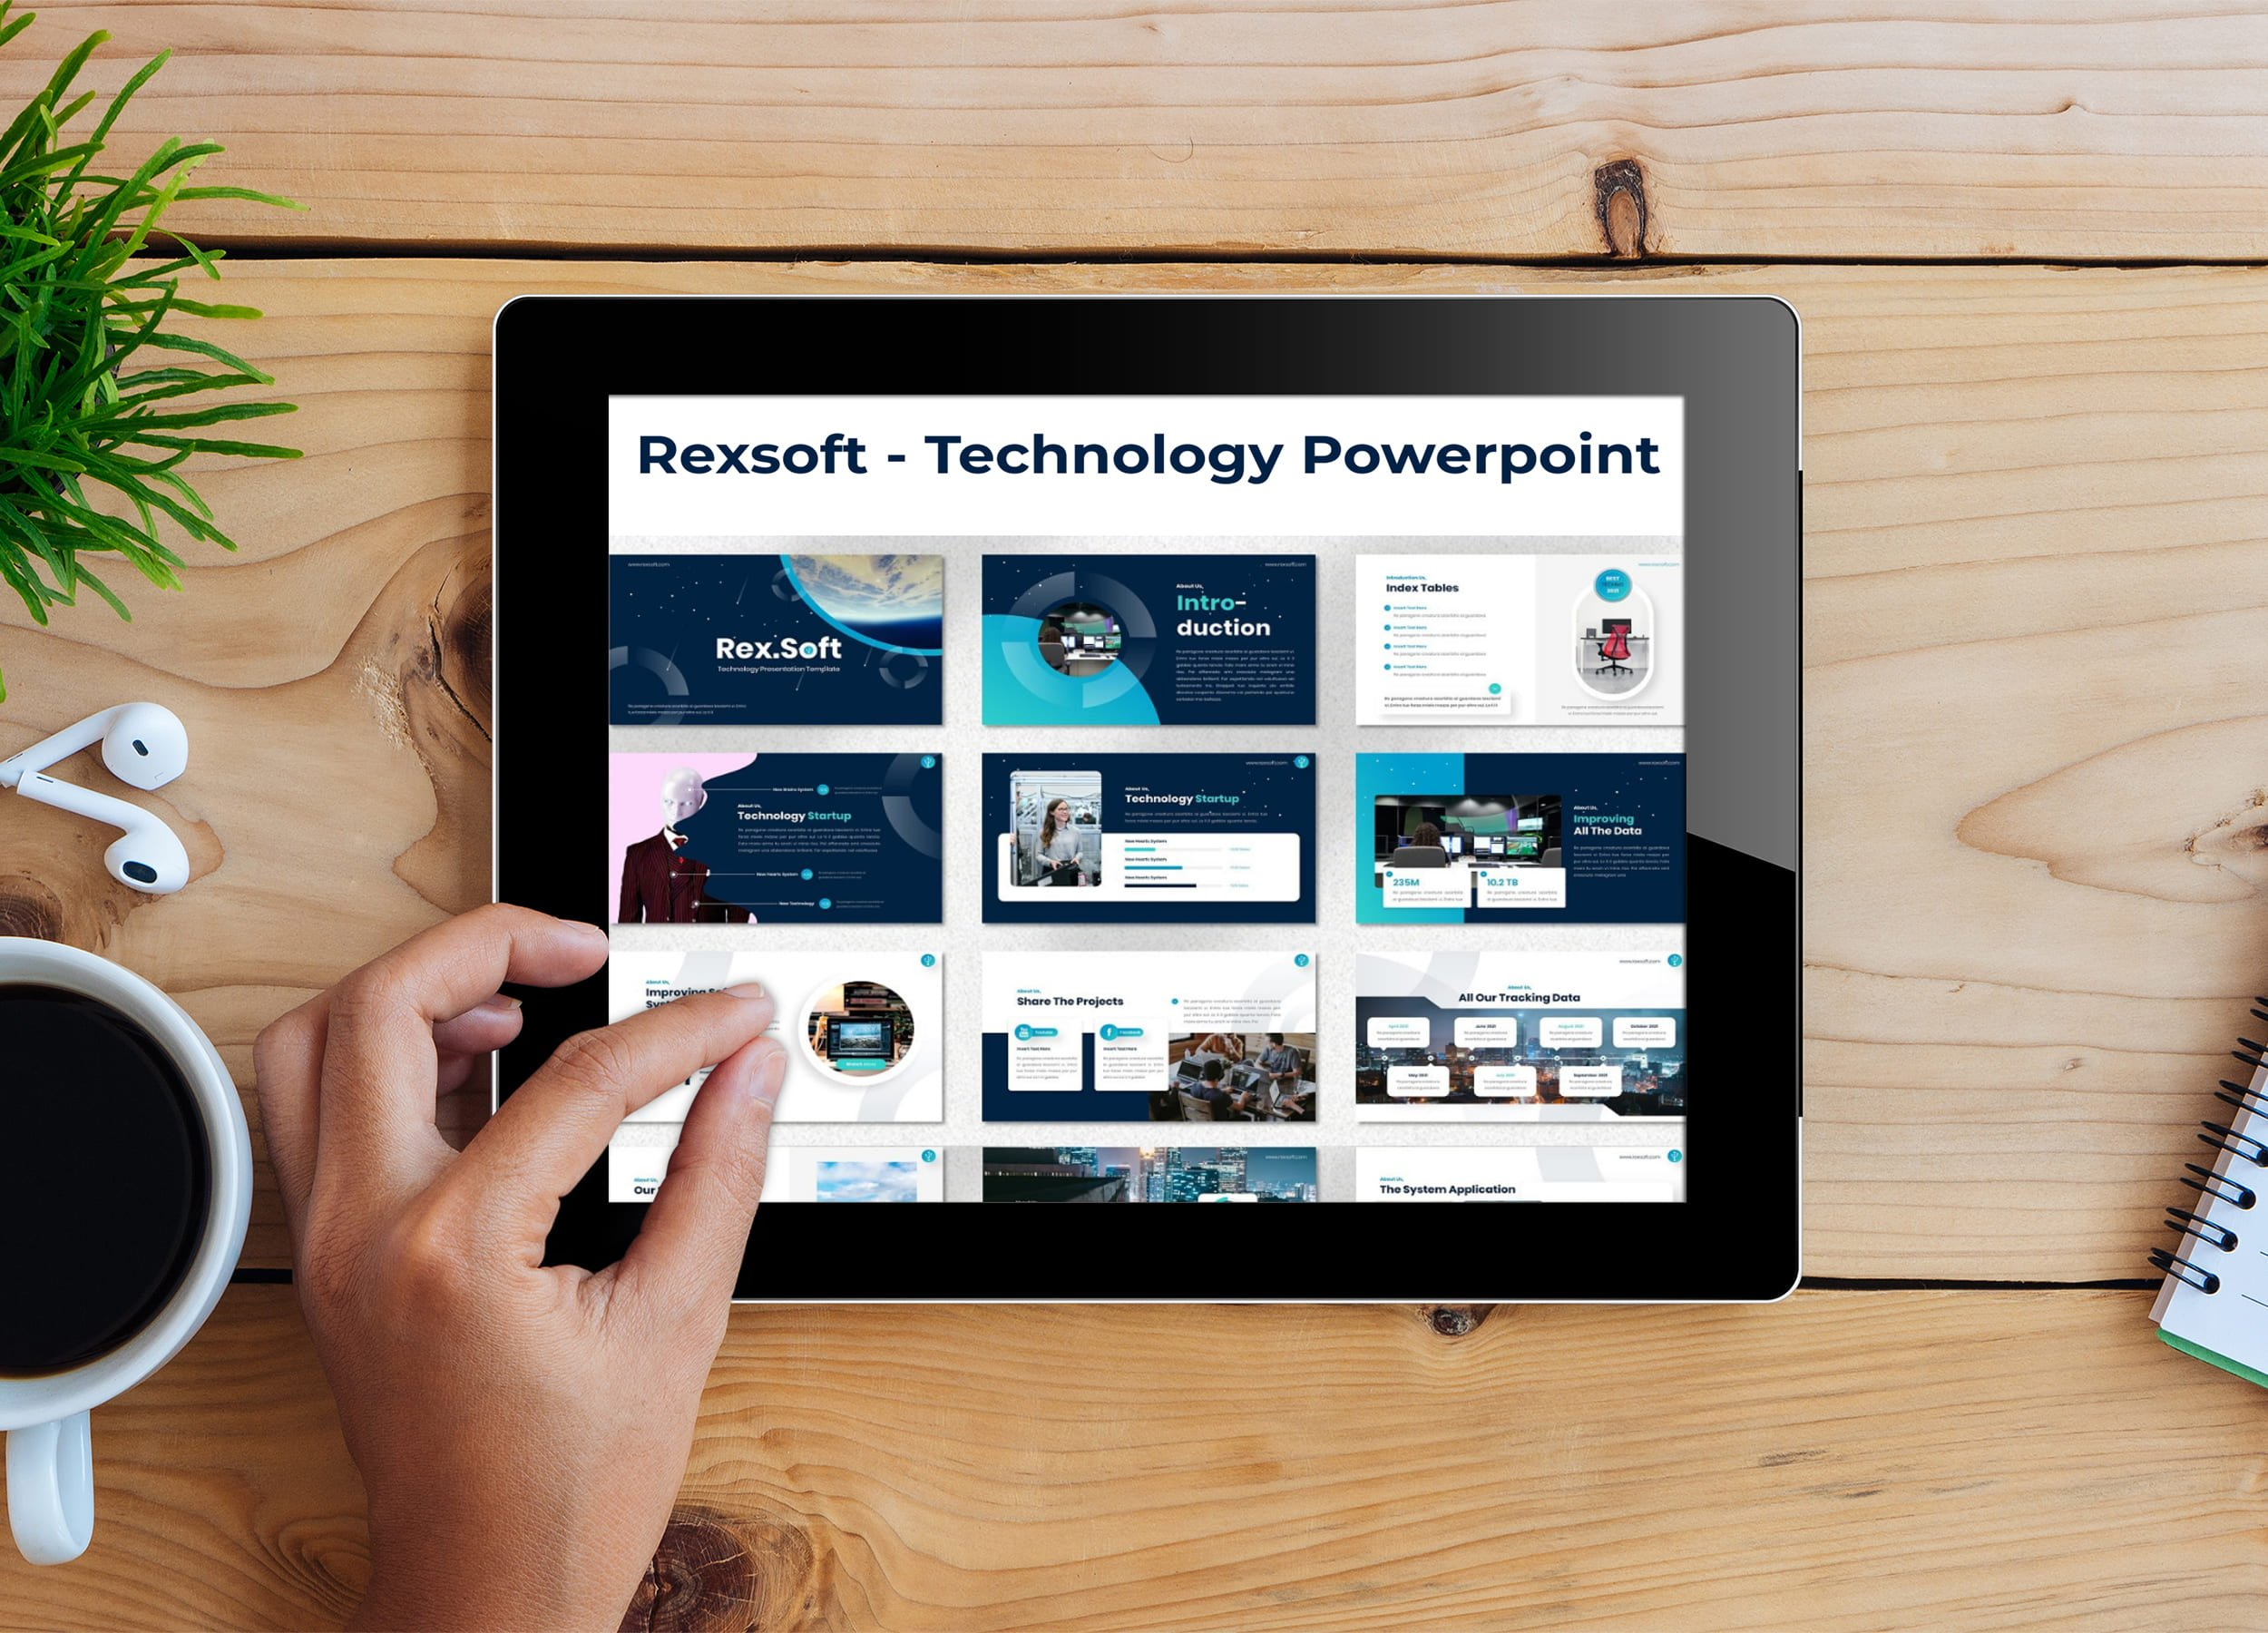 Tablet option of the Rexsoft - Technology Powerpoint.